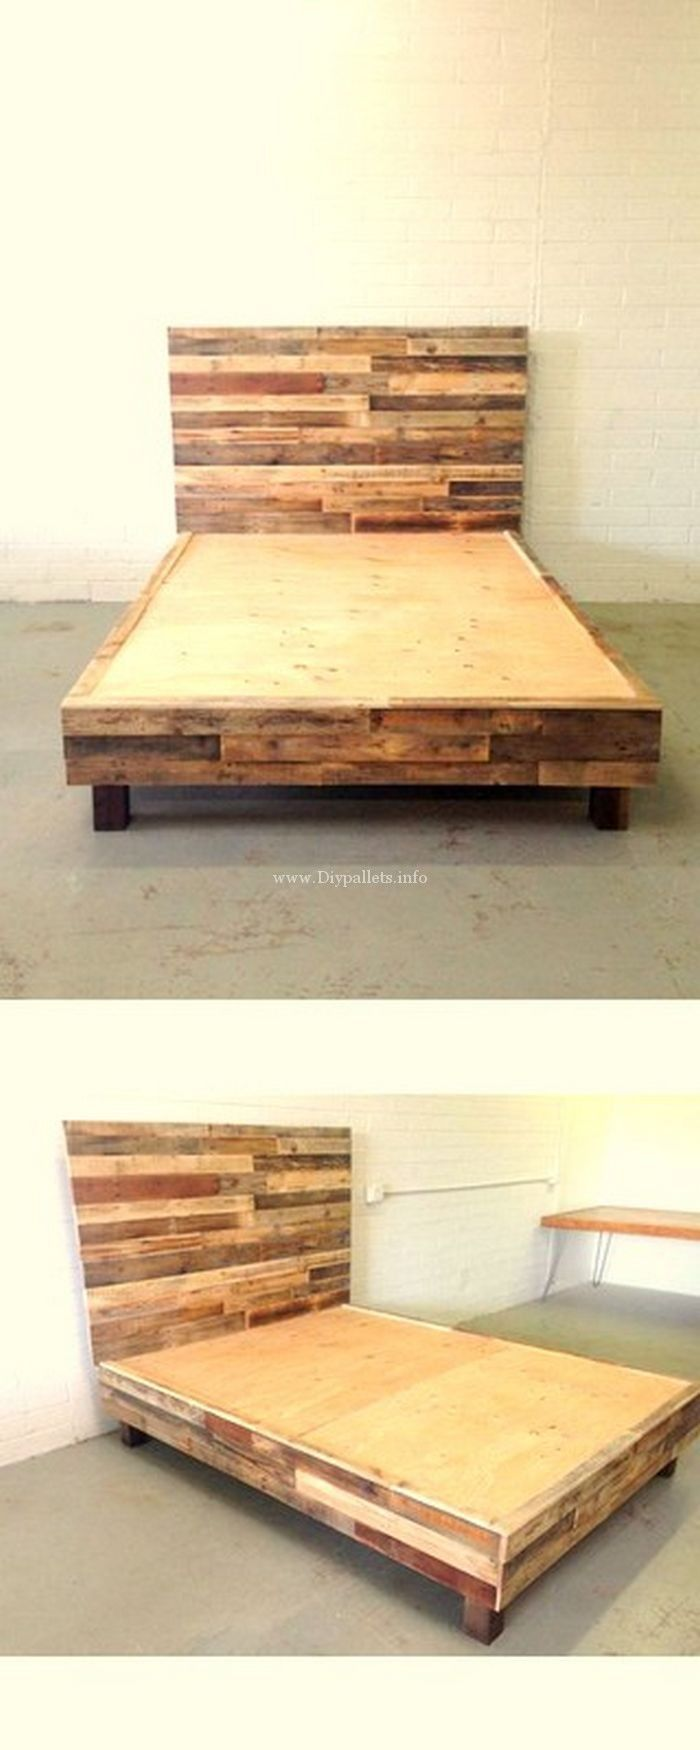 Stylish wooden pallets bed projects wooden pallets house in